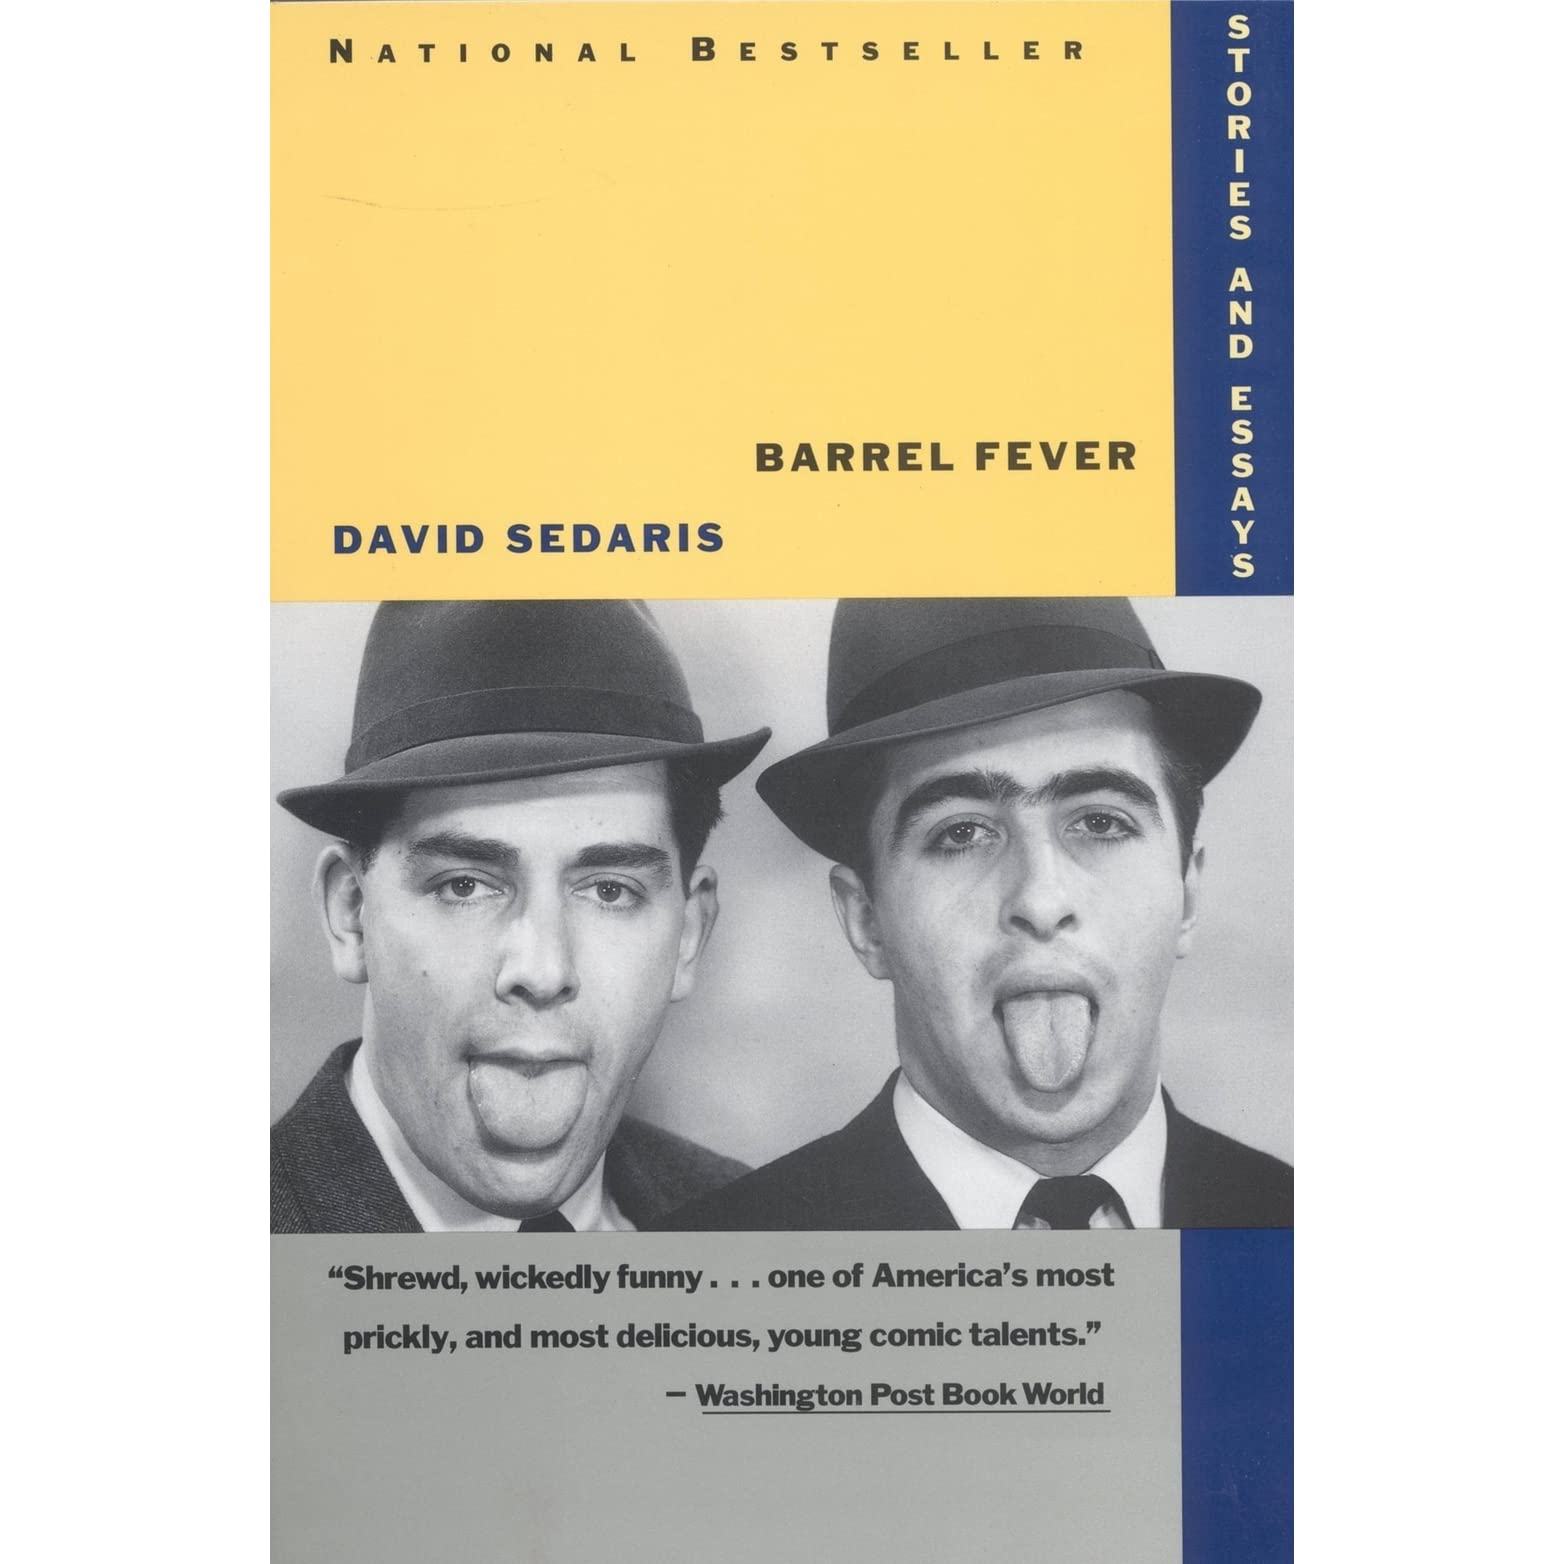 sedaris essays great essays and short stories by david sedaris barrel fever stories and essays by david sedaris reviews barrel fever stories and essays by